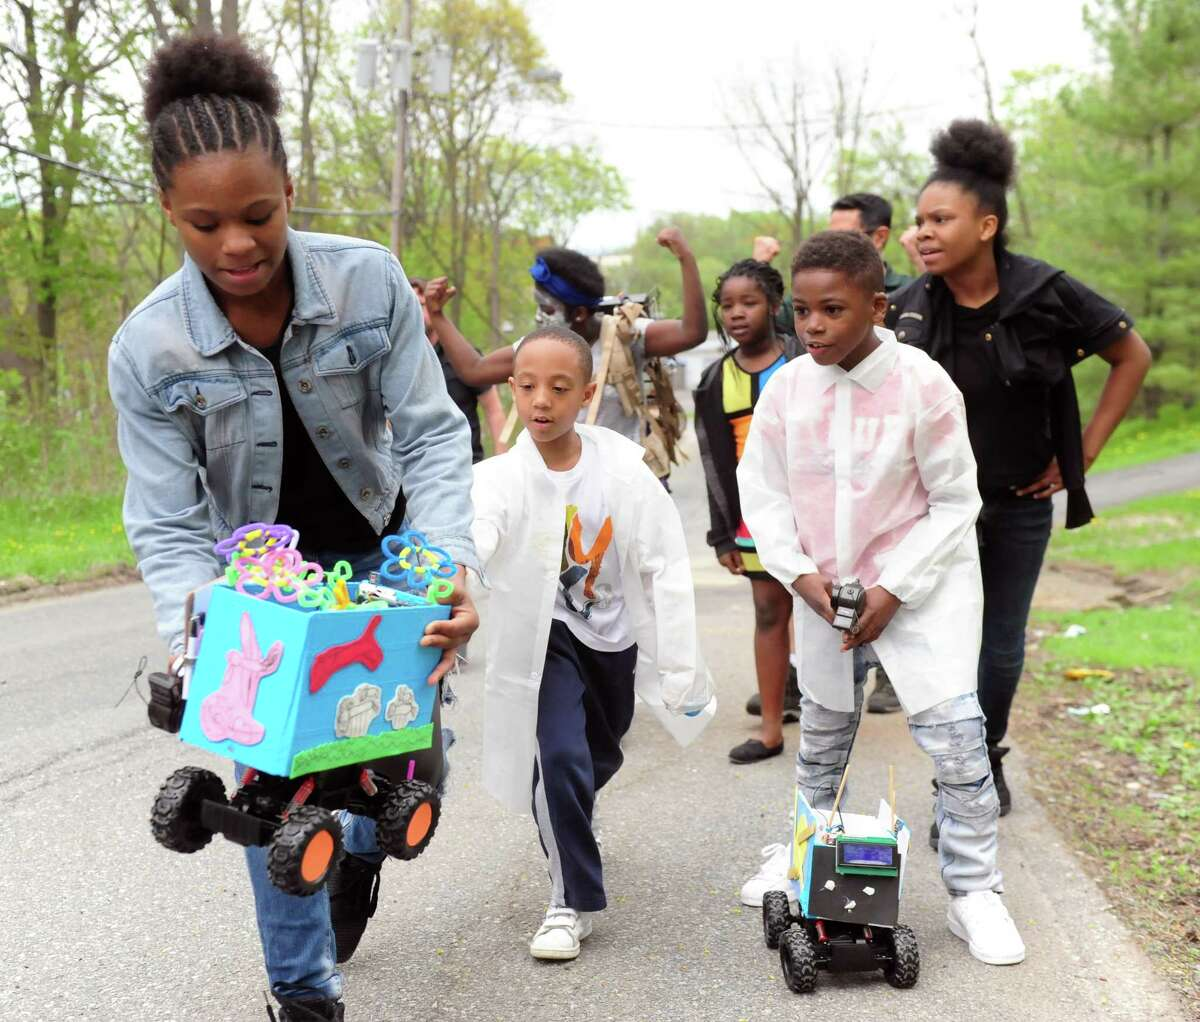 Kids walk with a rover that detects air temperatures and small particles in Albany, N.Y. on April 29, 2017. They were part of a program overseen by Rensselaer Polytechnic Institute that pairs science and art to get communities interested in local health initiatives. (Robert Downen / Times Union)